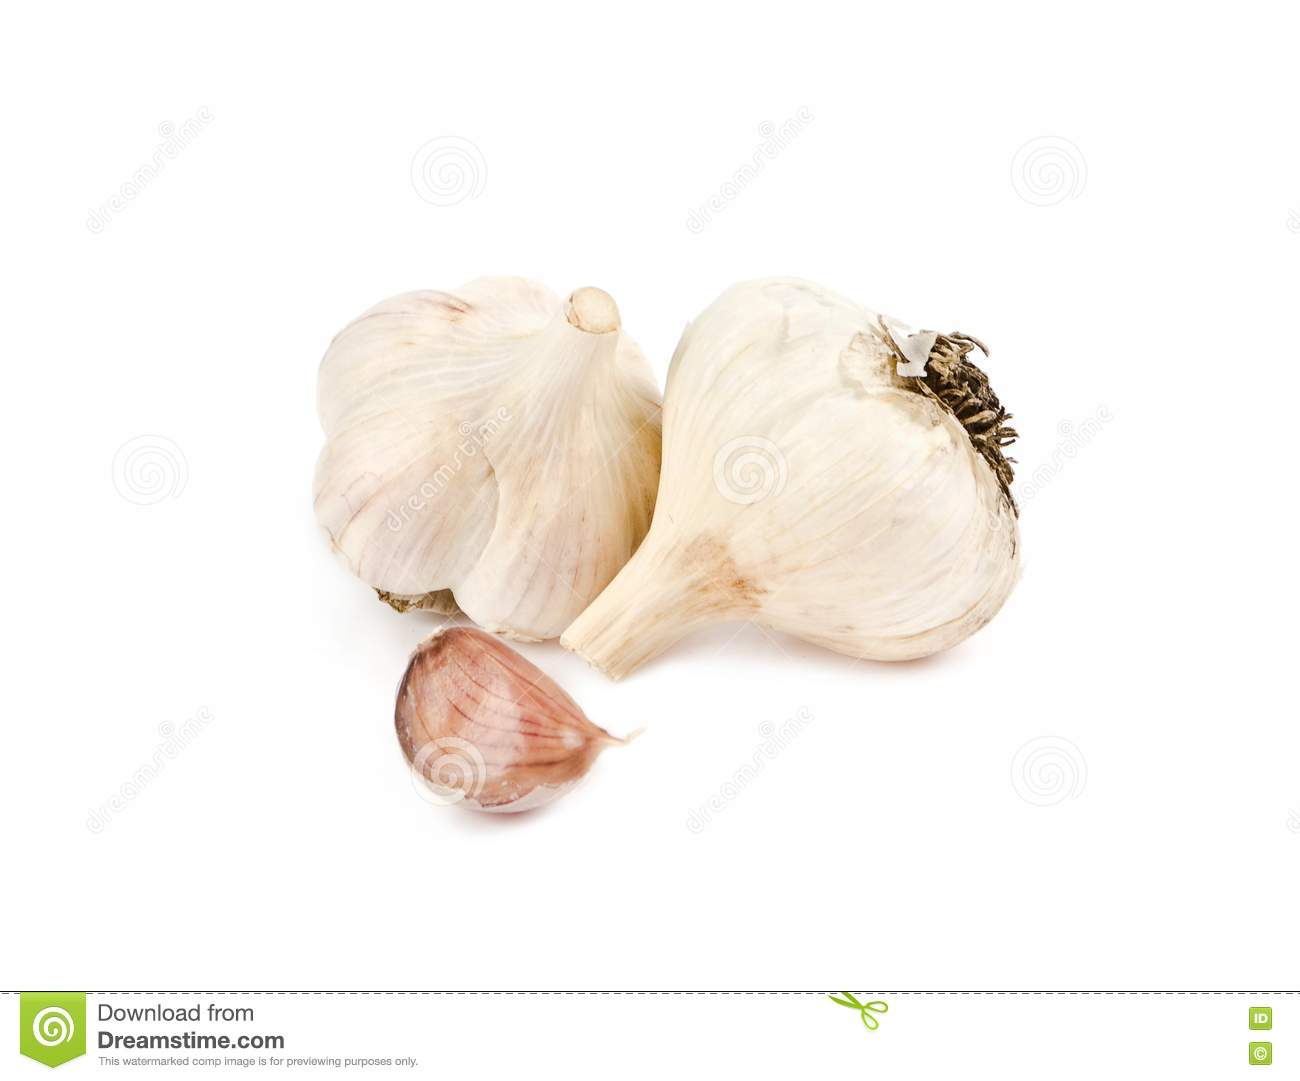 Two Heads Of Garlic And Clove Stock Photo - Image: 24103130